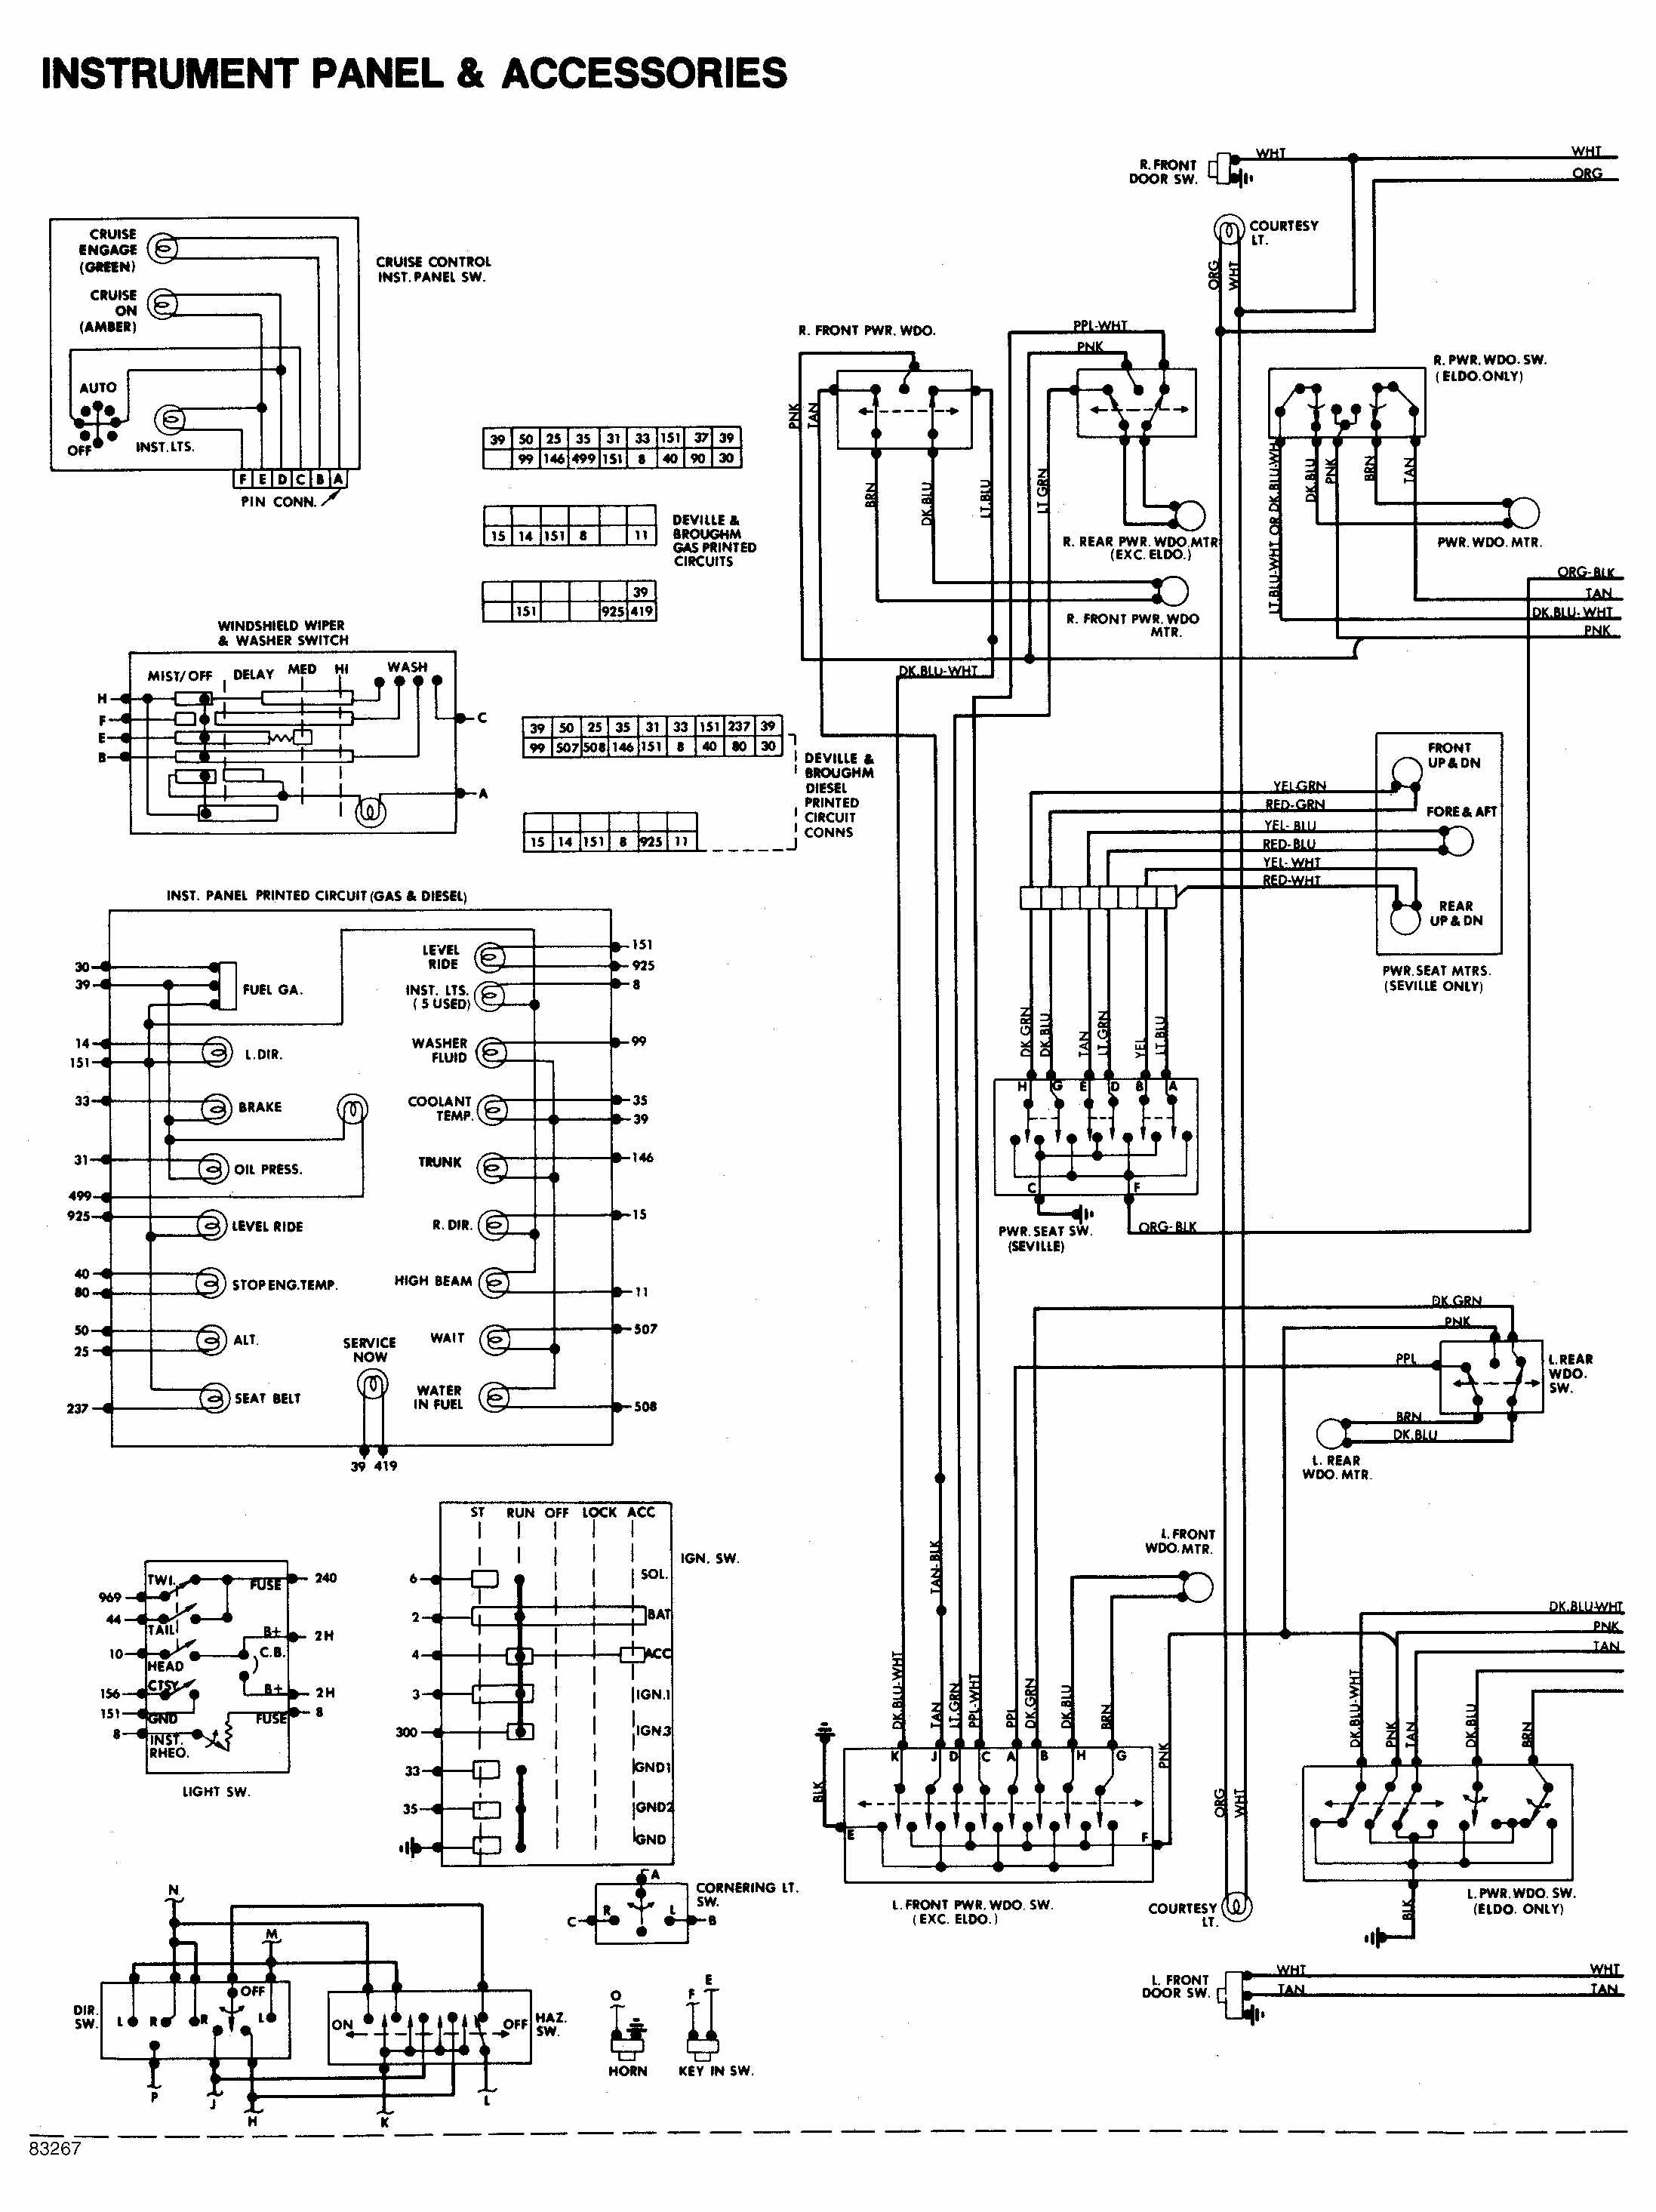 instrument panel and accessories wiring diagram of 1984 cadillac deville chevy diagrams 1984 oldsmobile delta 88 wiring diagram at soozxer.org